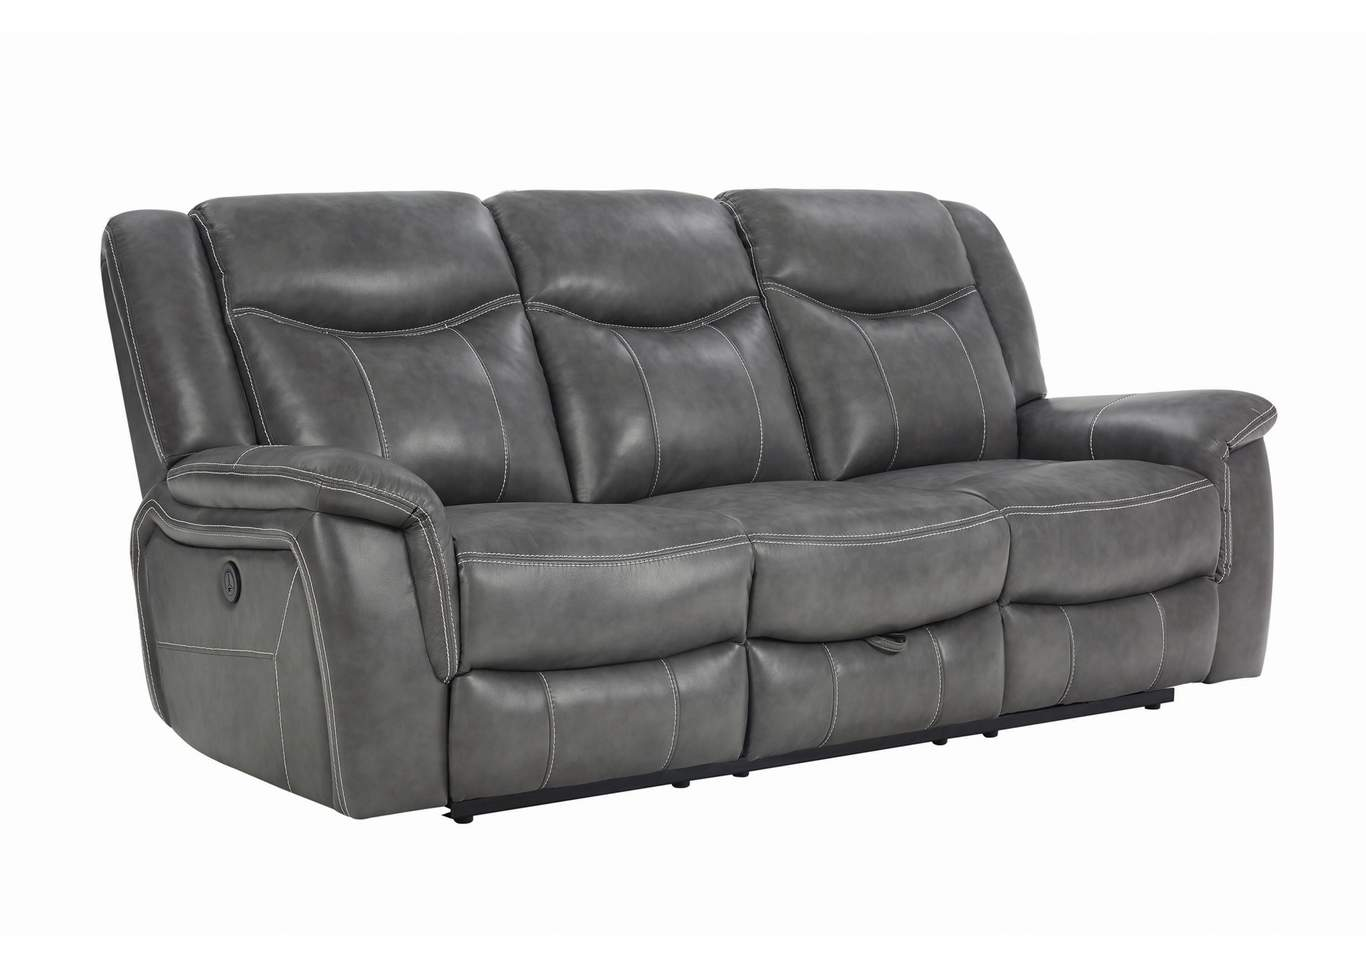 Granite Gray Conrad Transitional Grey Power Sofa,Coaster Furniture